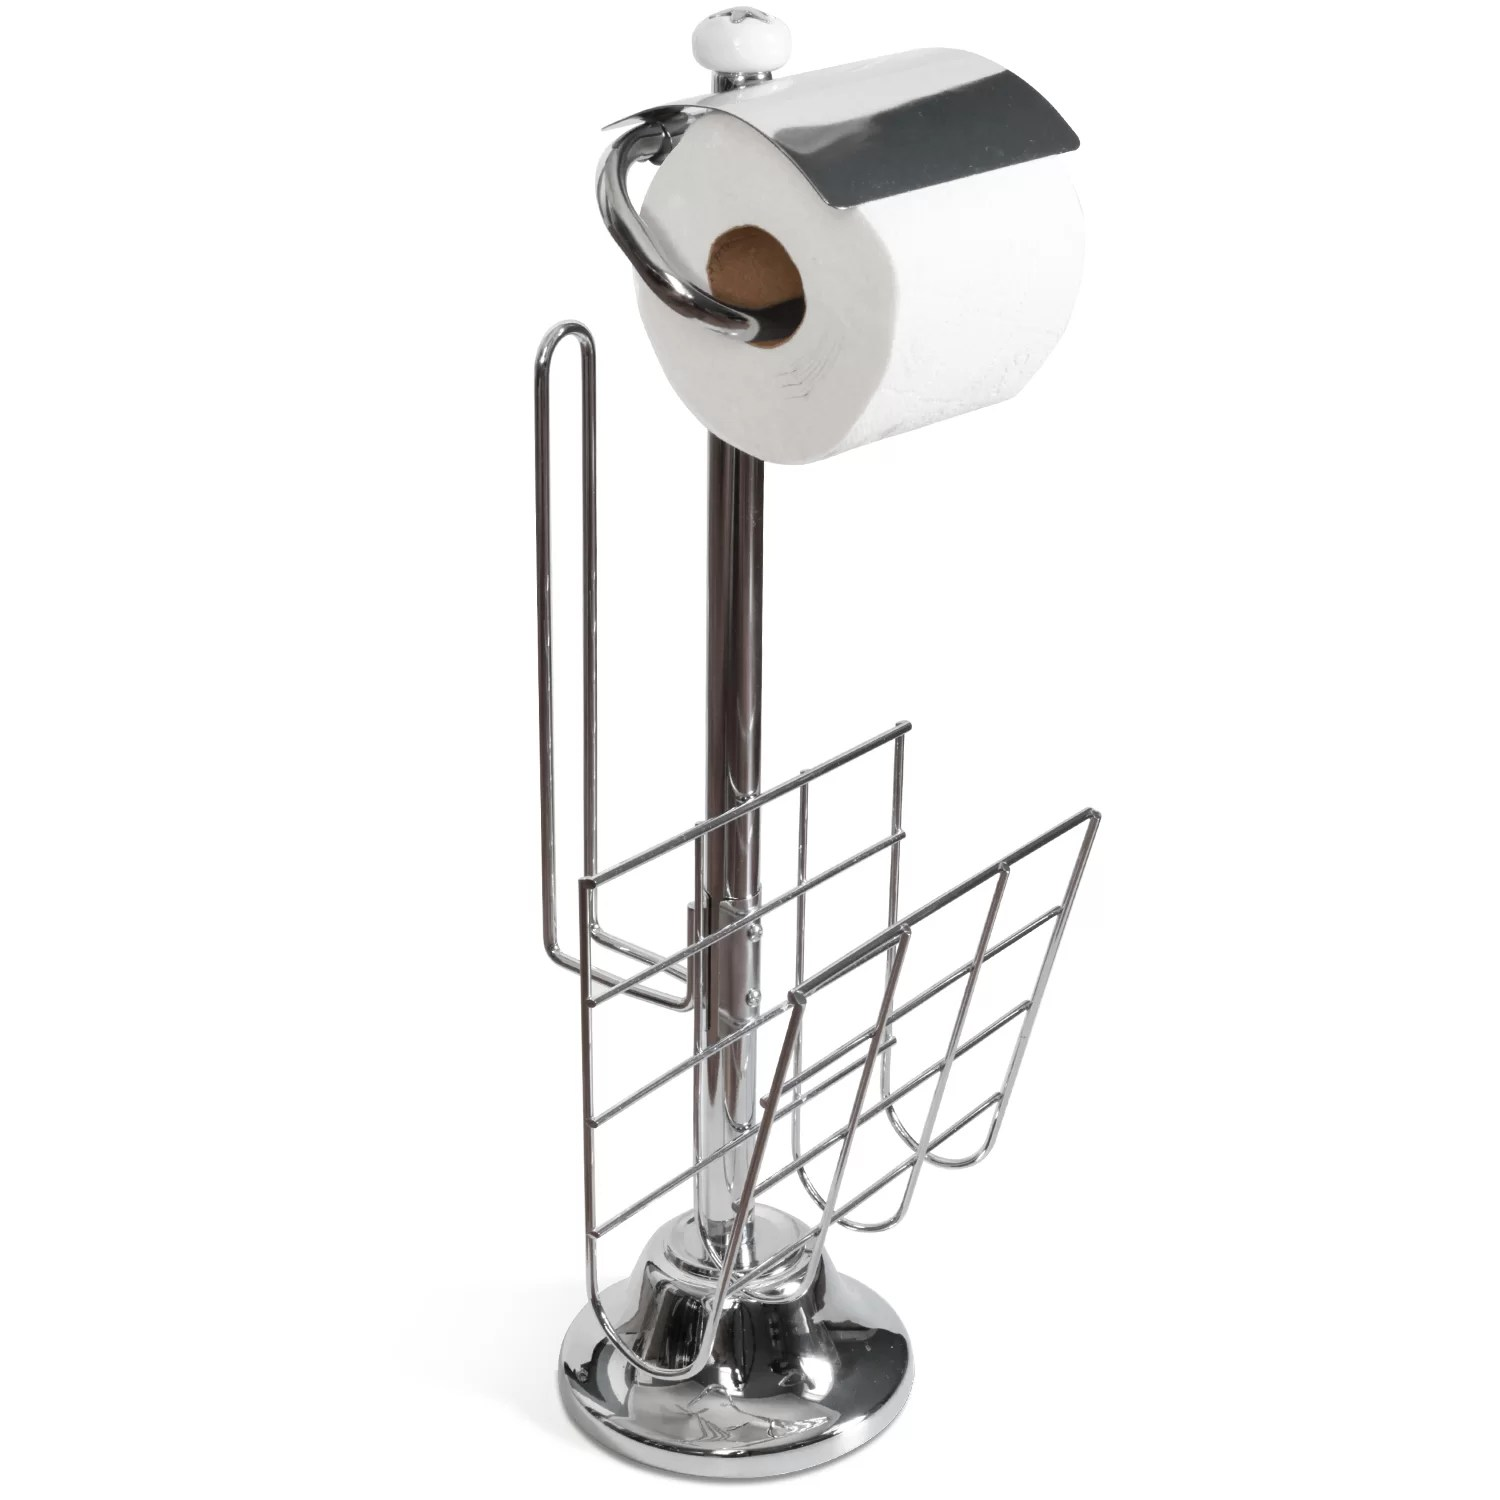 Free Standing Toilet Paper Holder Toilet Tree Products Freestanding Toilet Paper Holder And